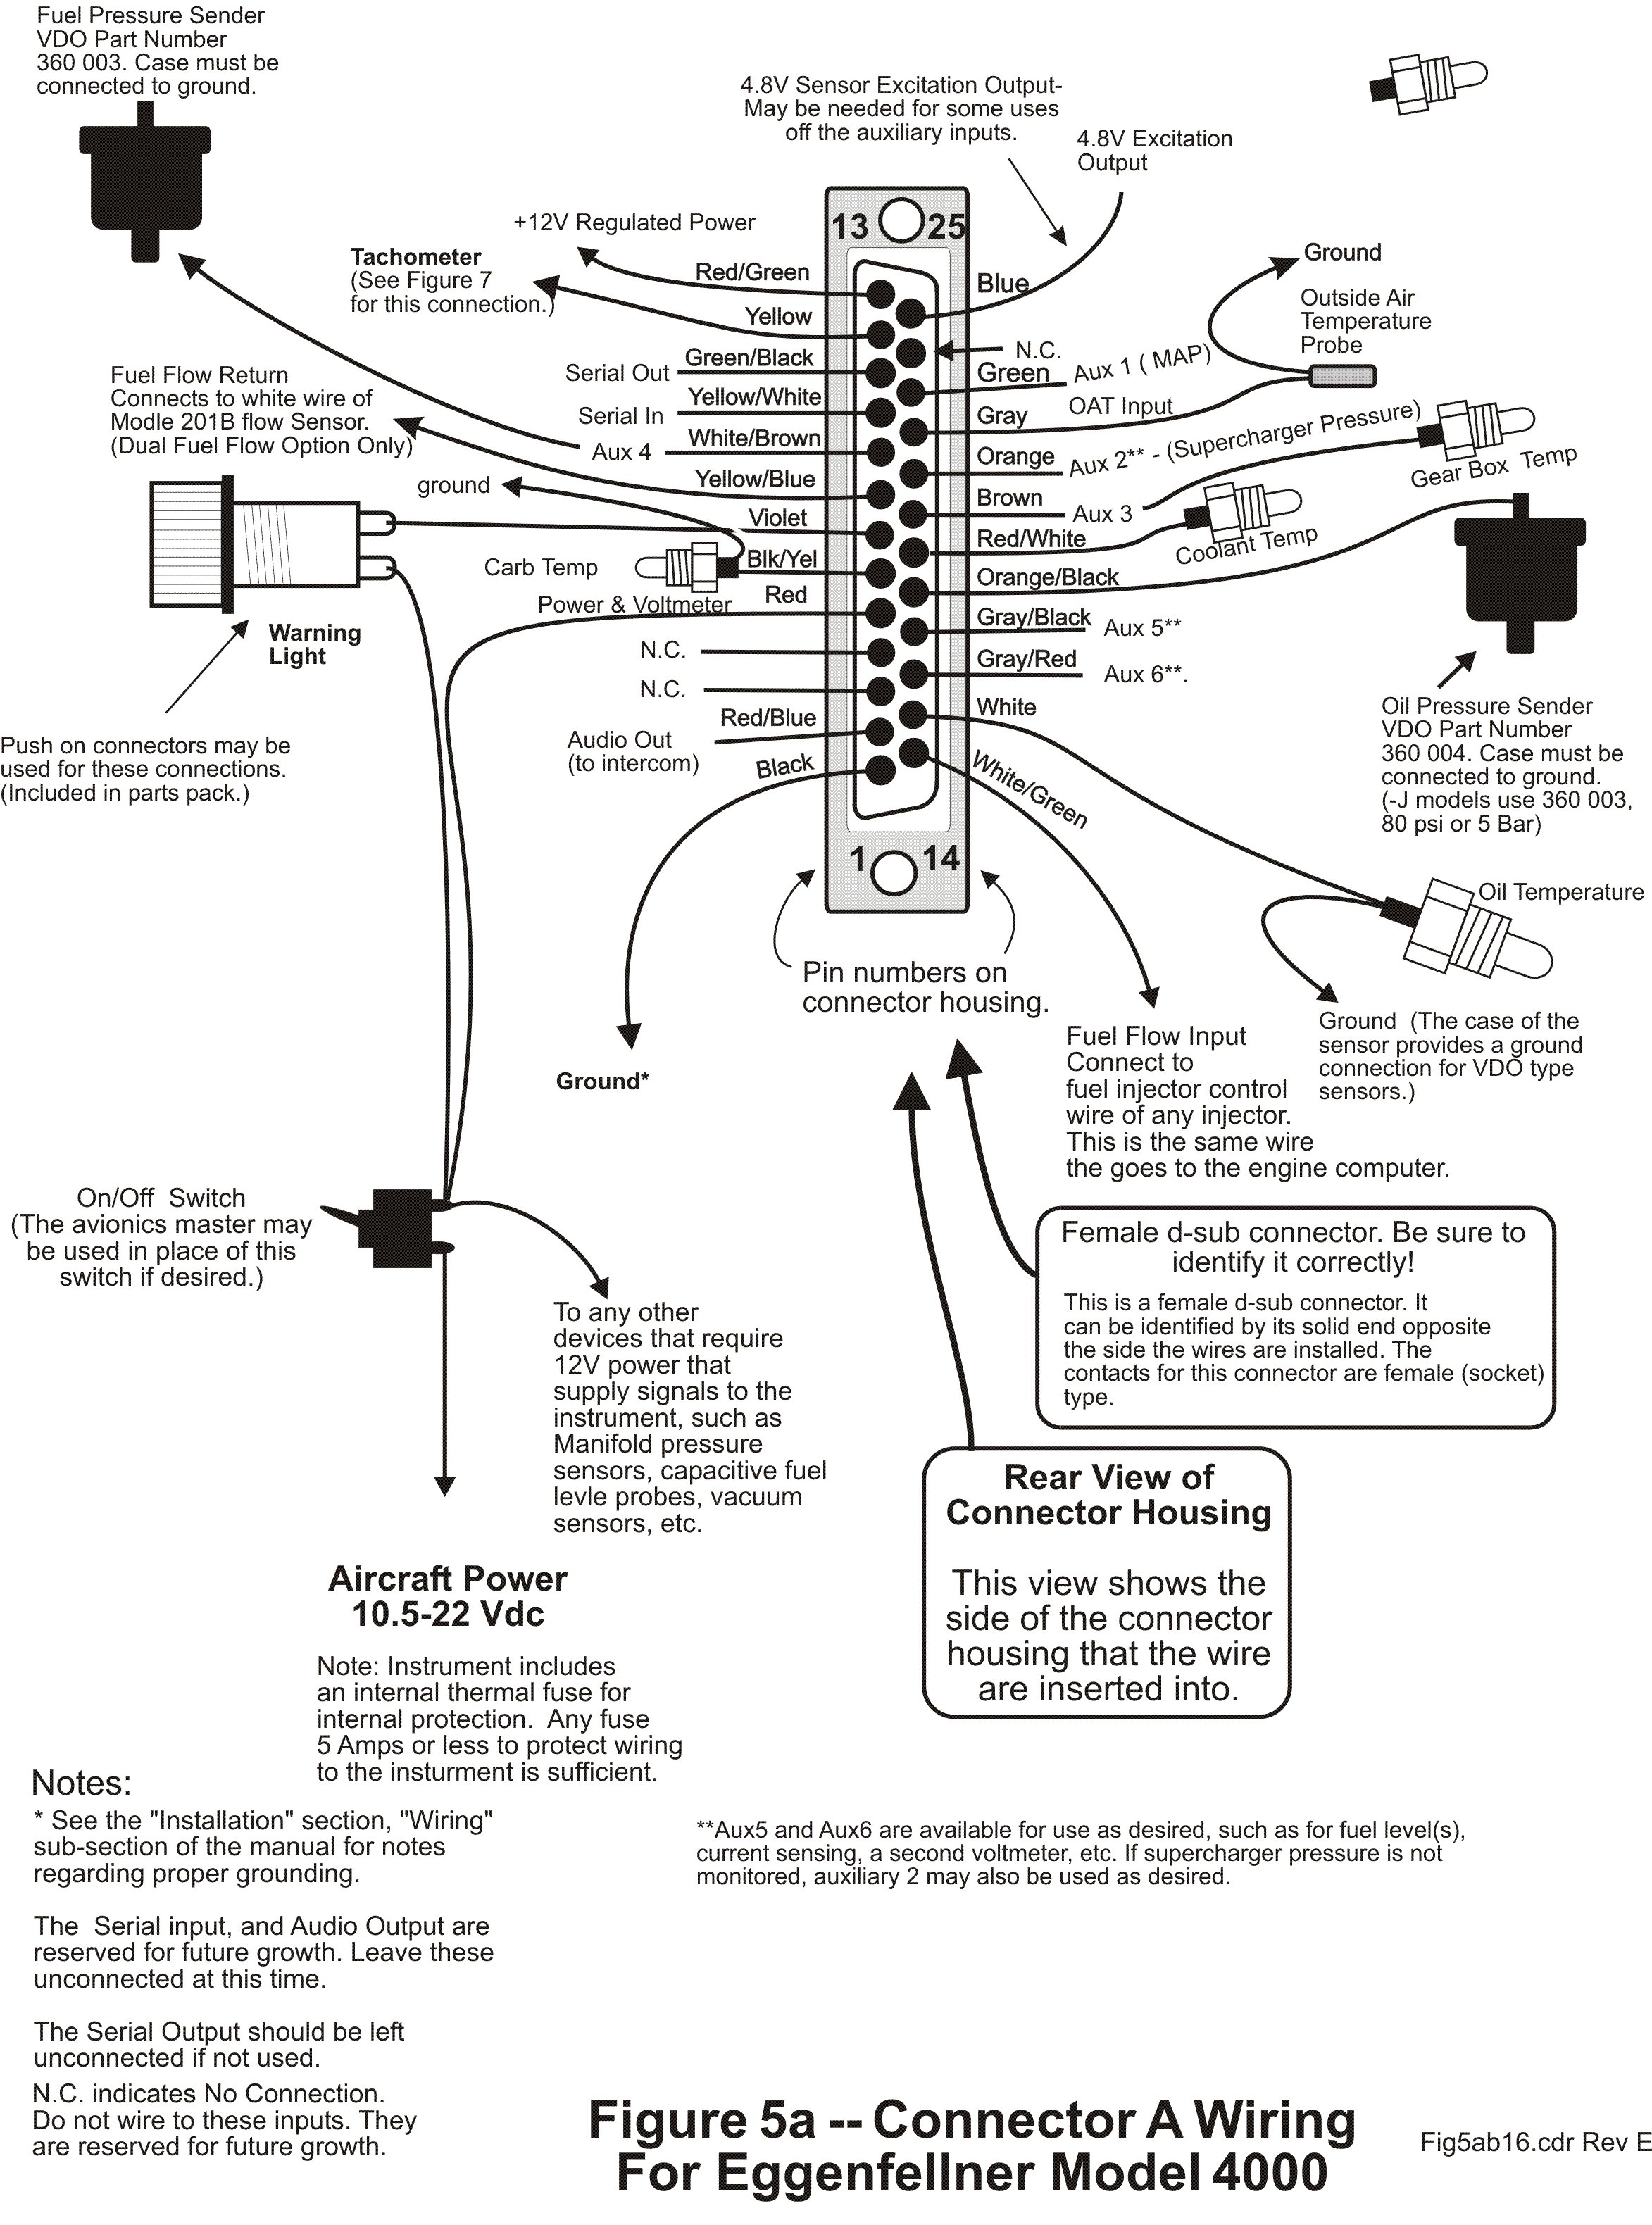 Power Cable Wiring Diagram For Rv